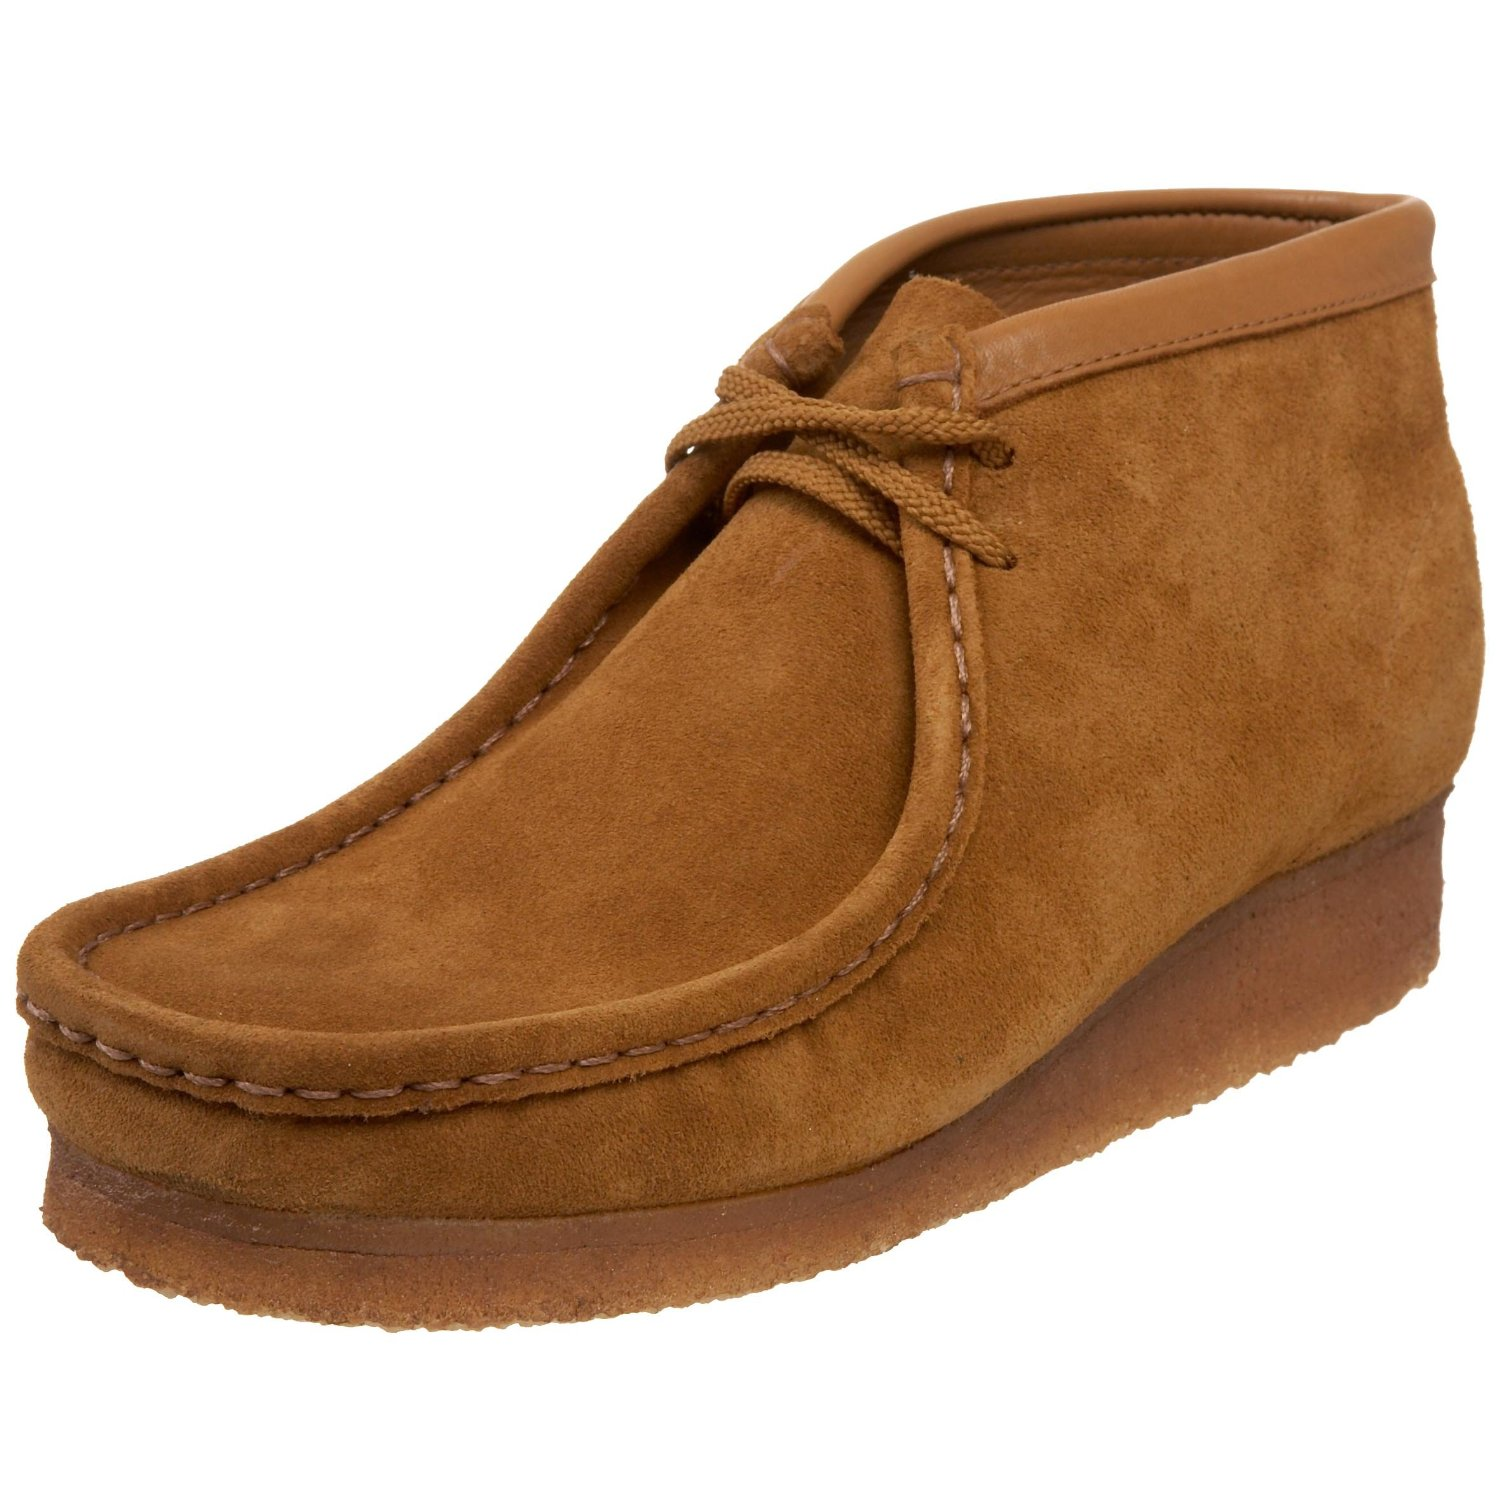 Wallabees Shoes Sale